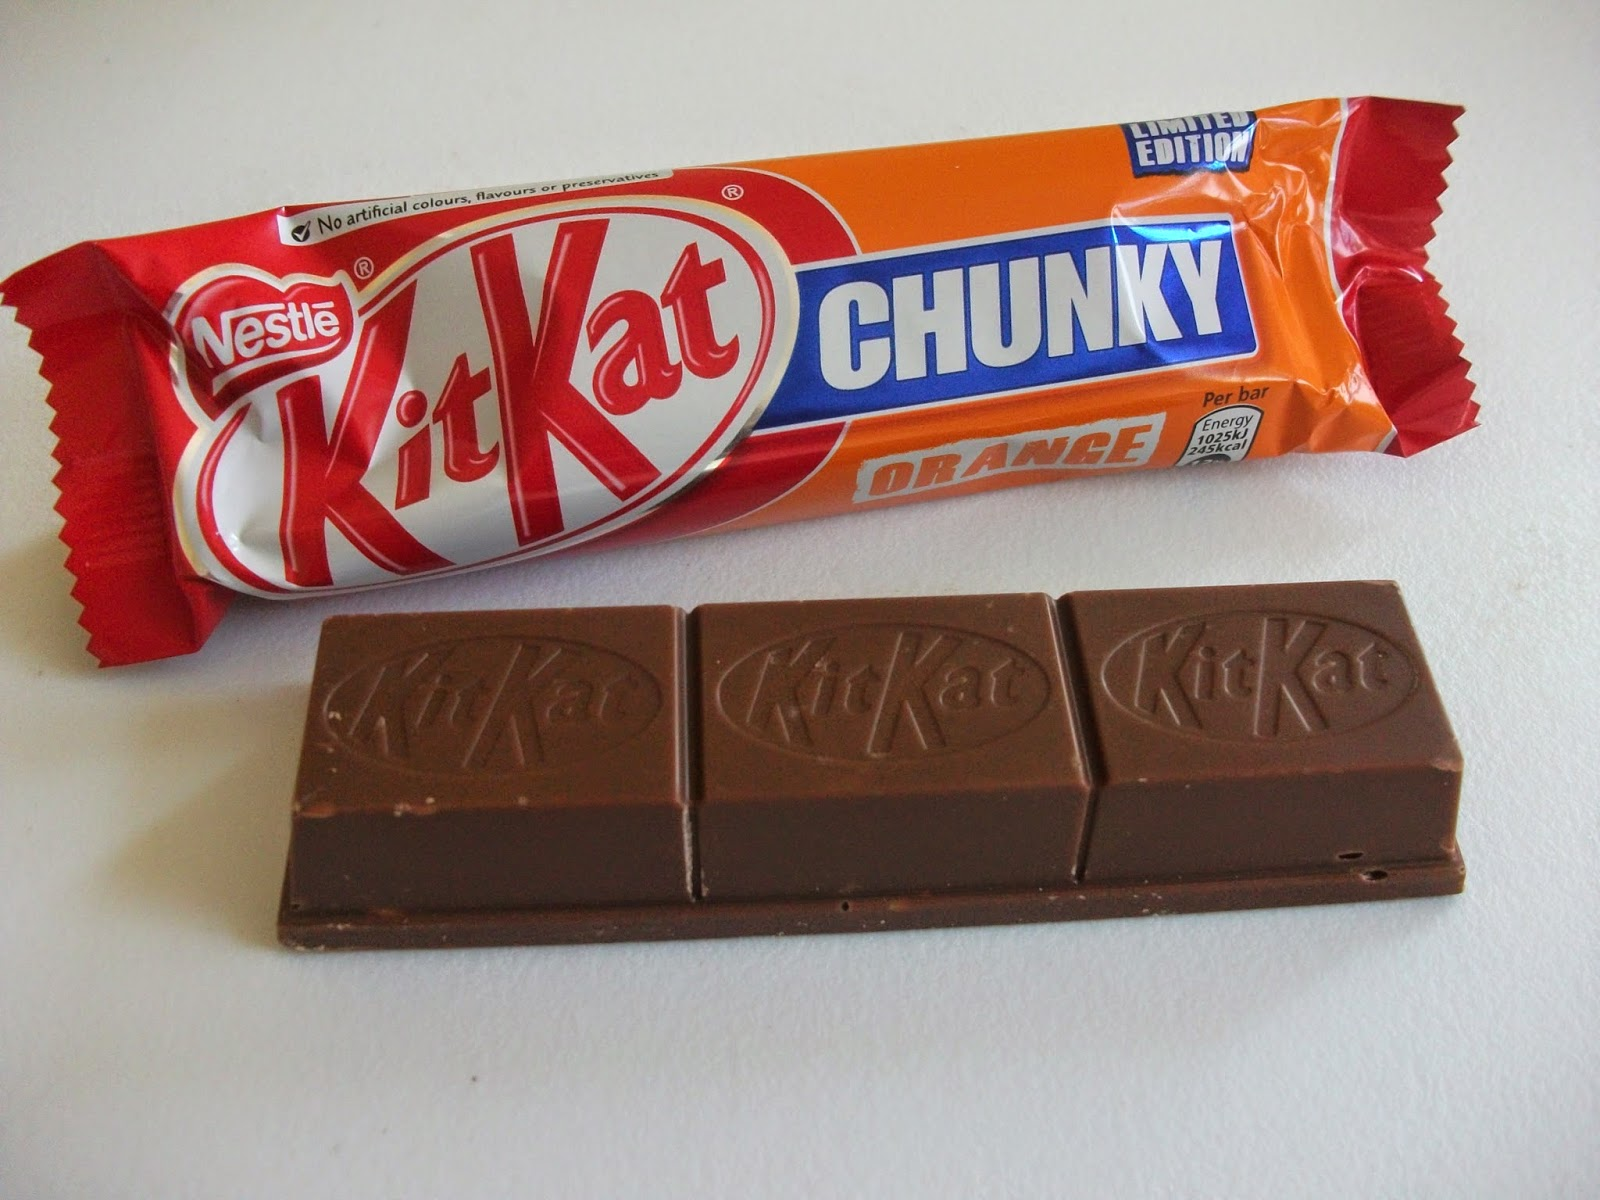 Nestl Kitkat Chunky Orange Limited Edition Review